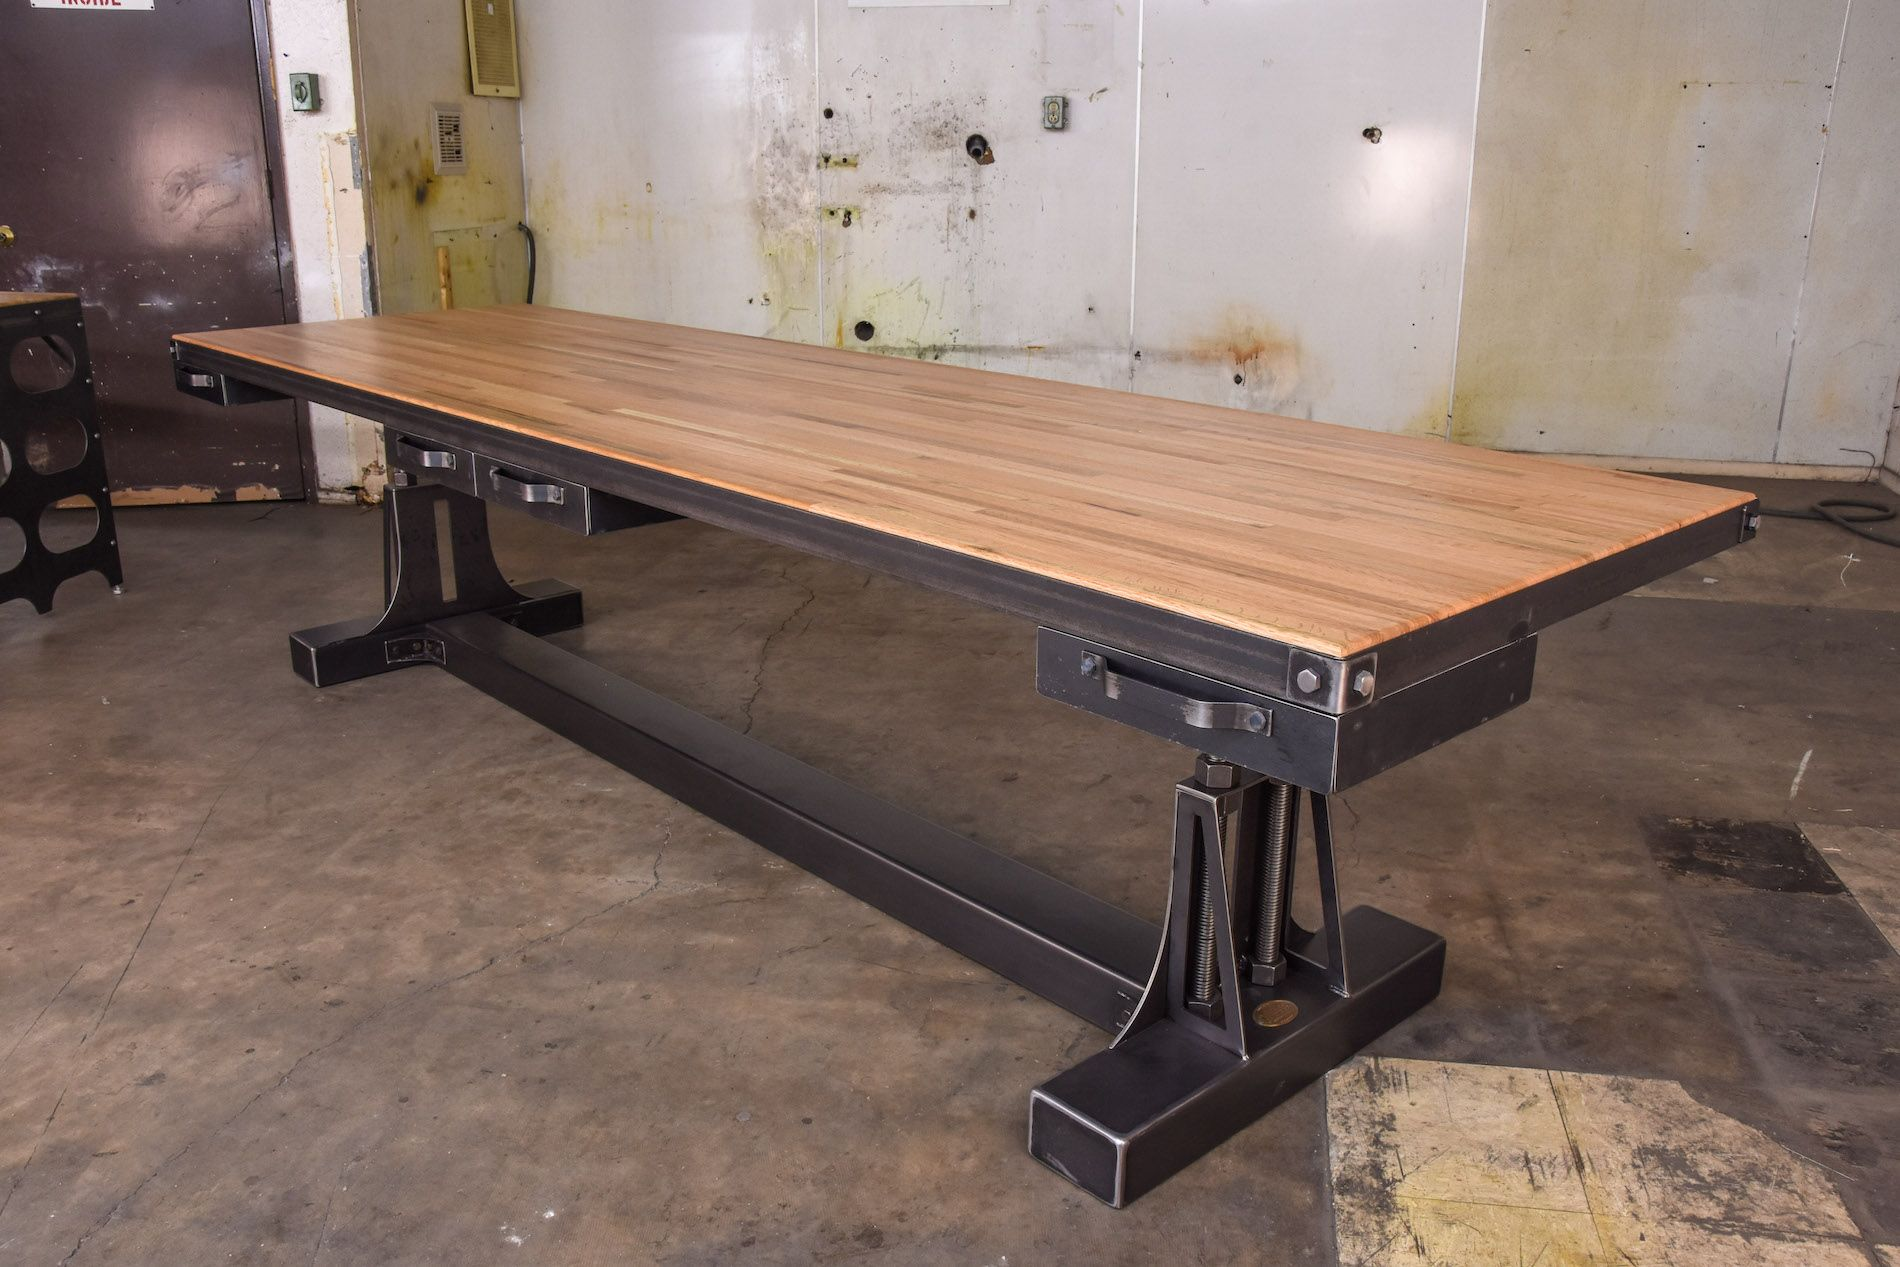 Post industrial conference table vintage industrial furniture - Post Industrial Double Workstation Model Po1 Vintage Industrial Furnitureindustrial